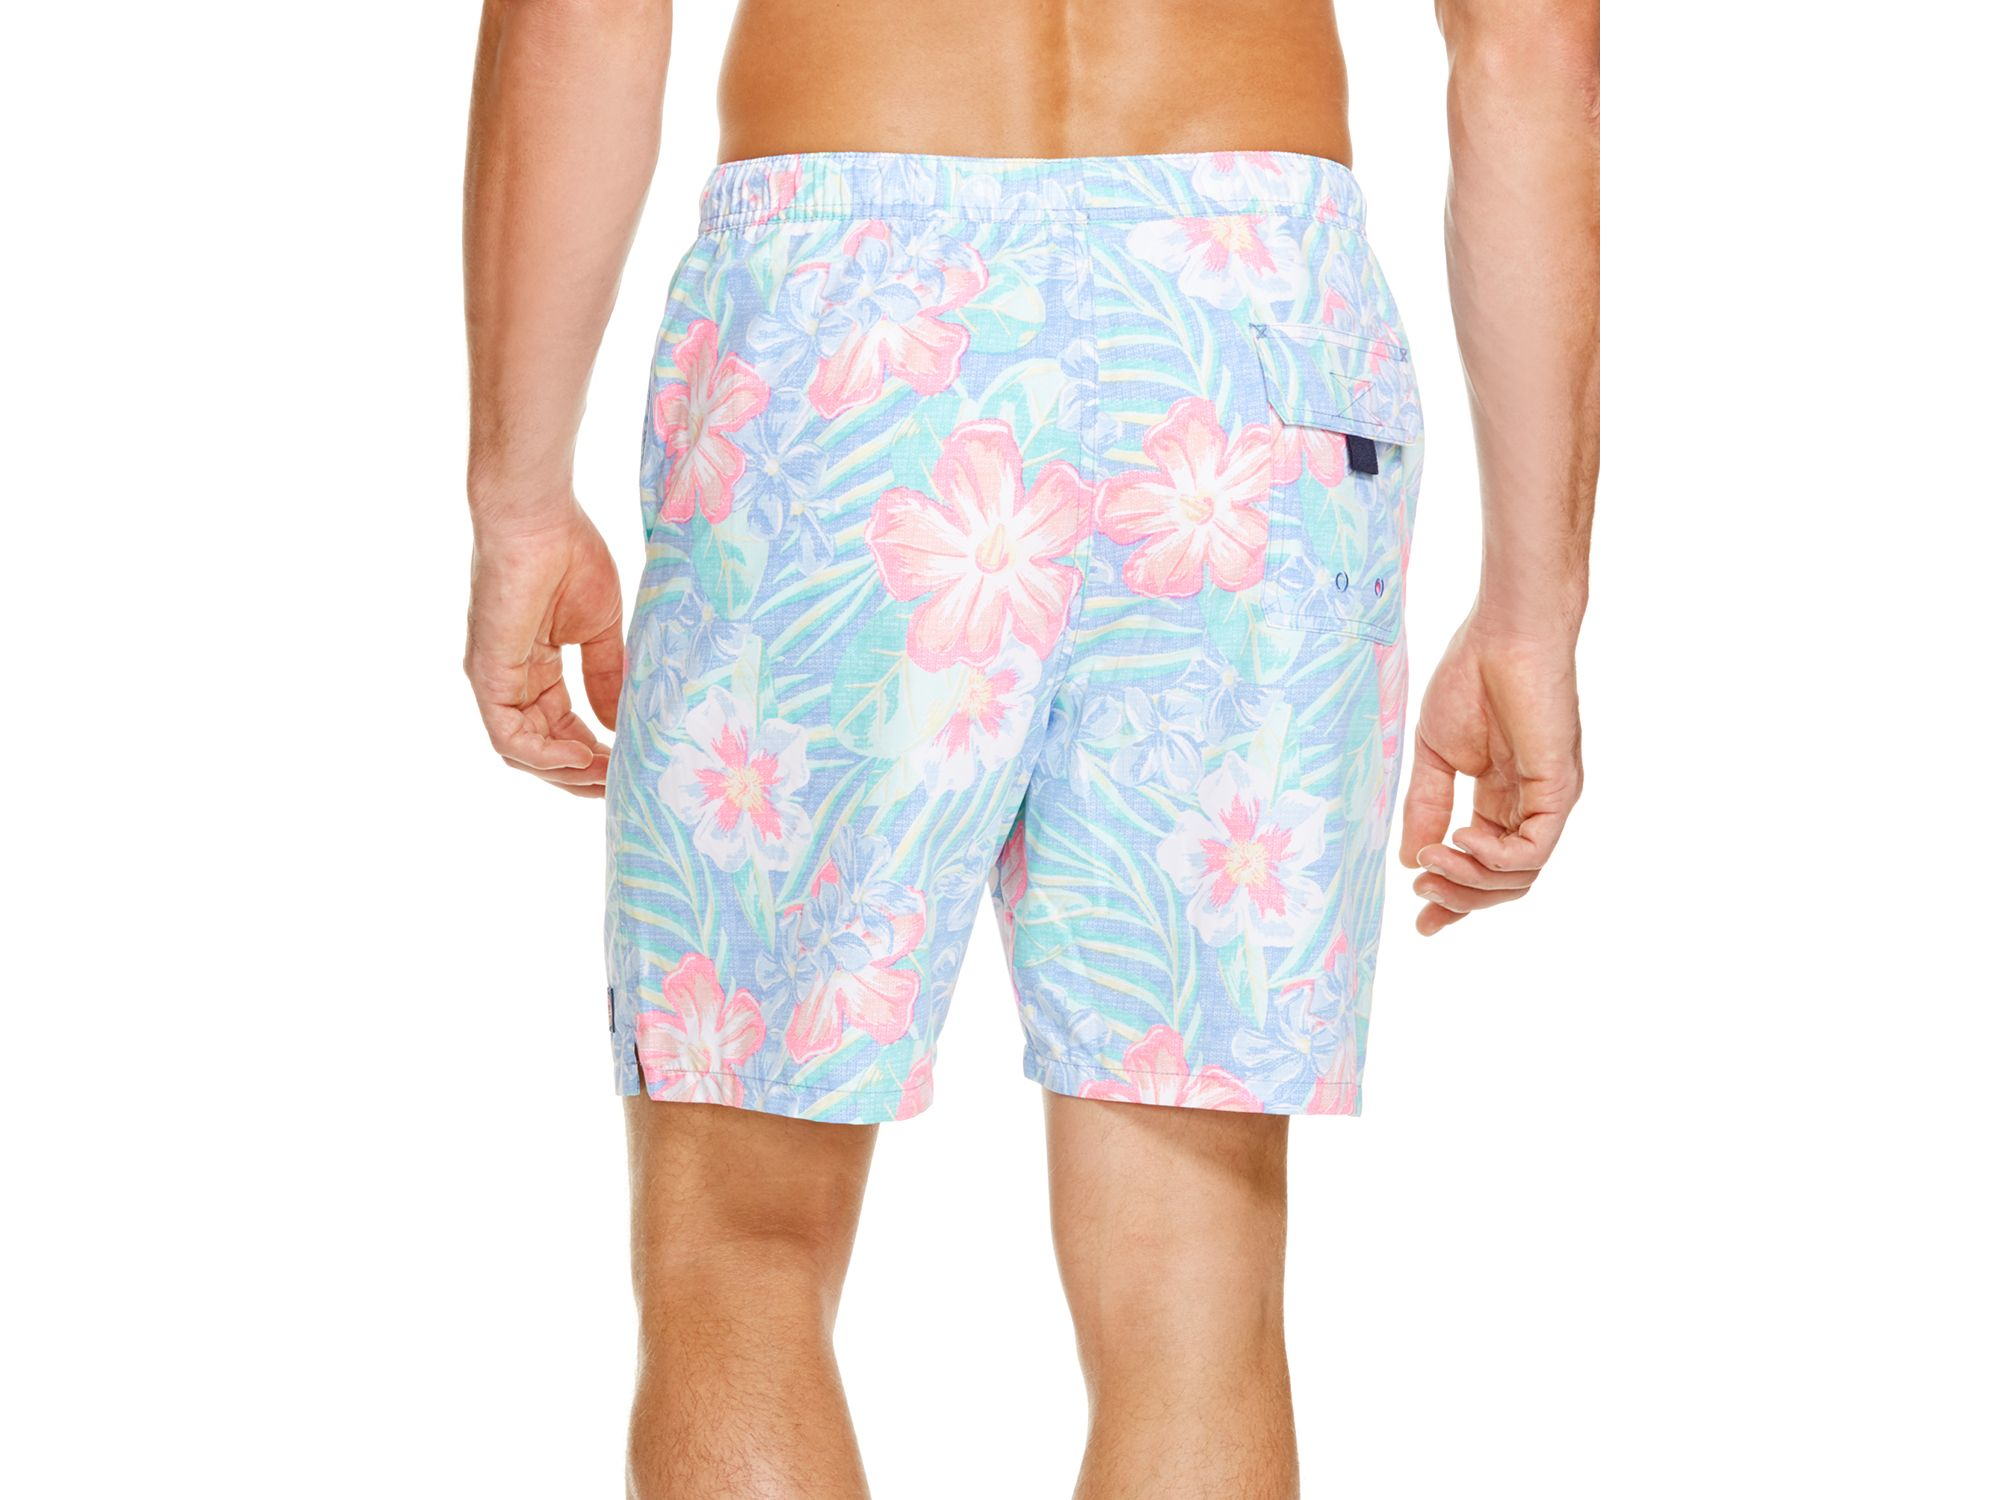 f074e64b7cb0a Vineyard Vines Island Floral Chappy Swim Trunks in Blue for Men - Lyst